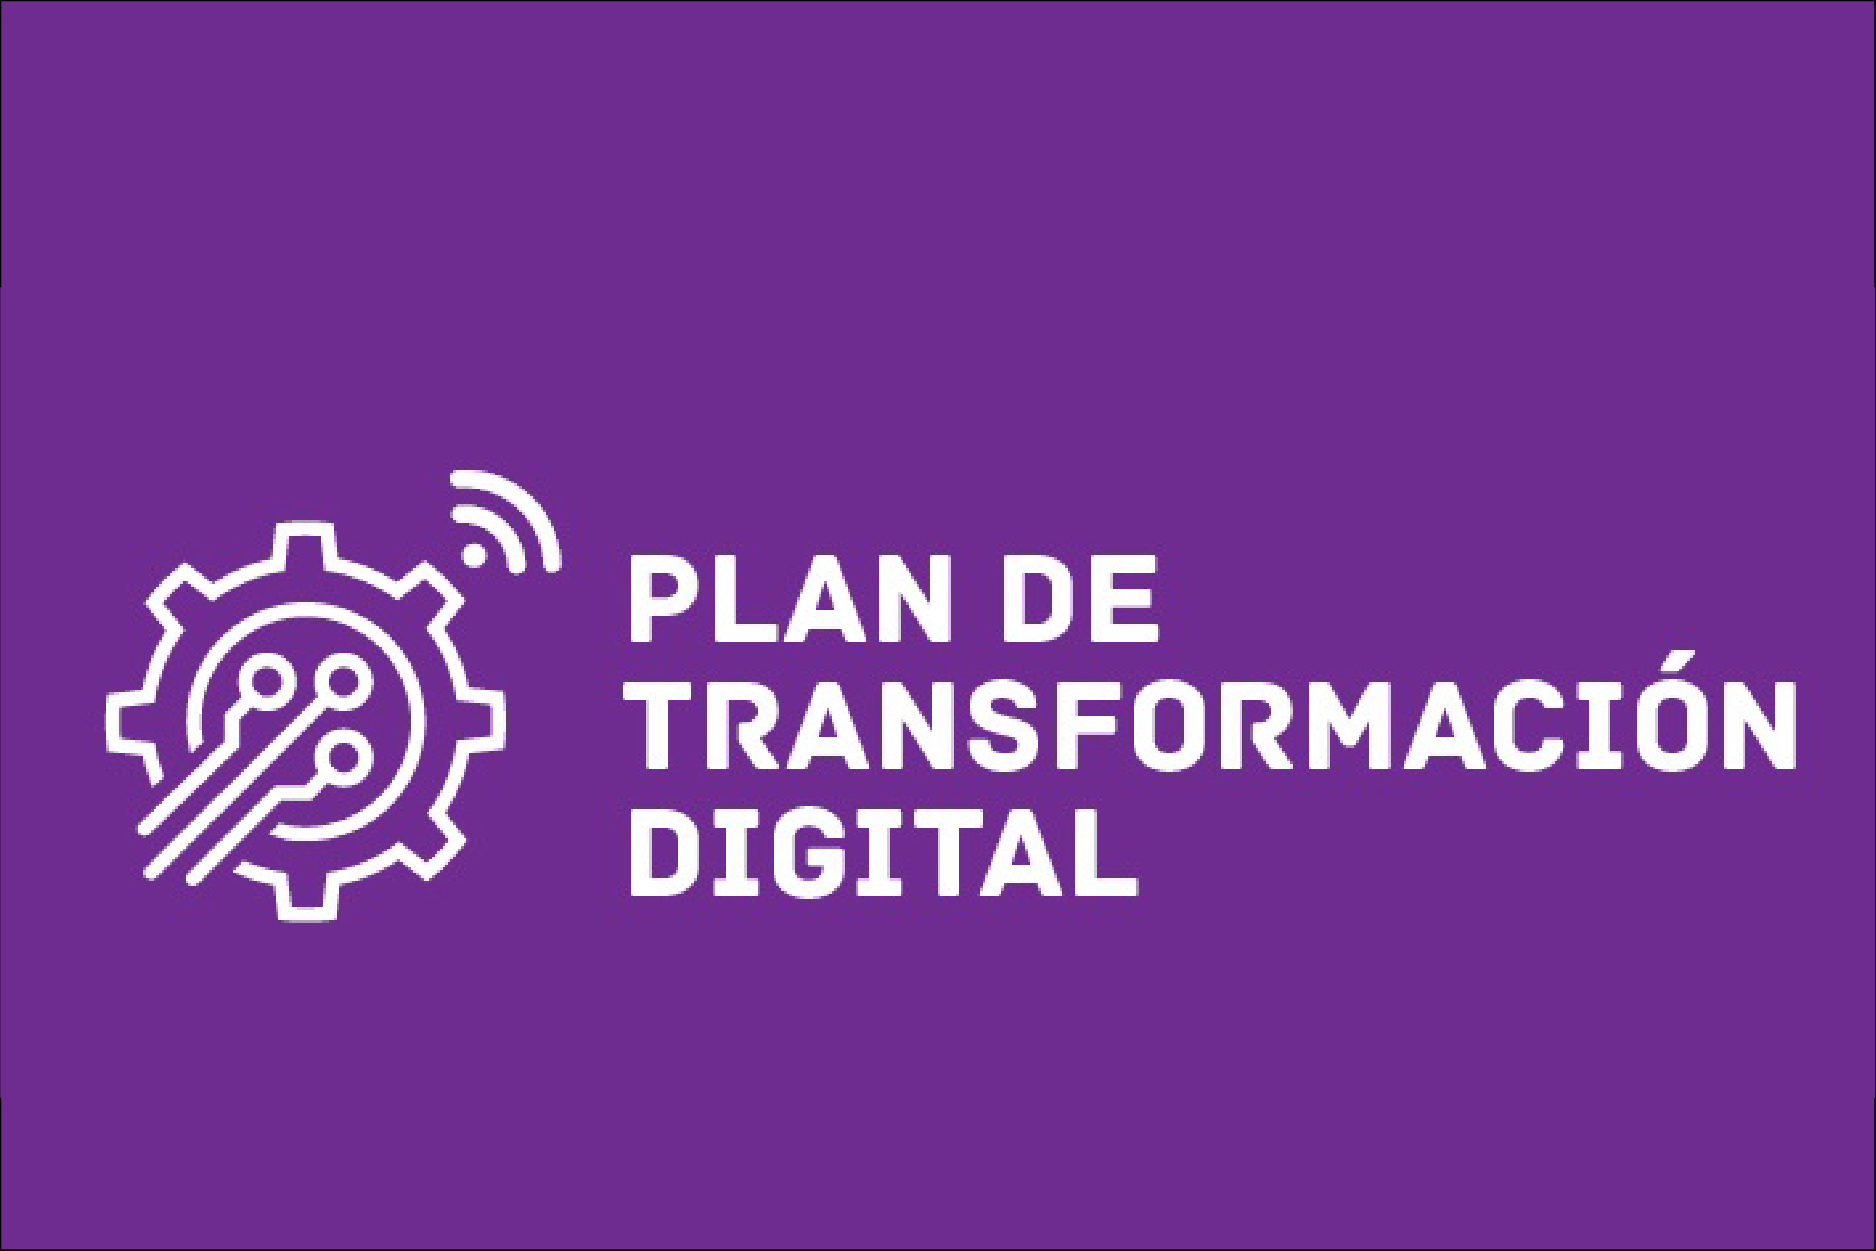 Convocatoria: Plan de Transformación Digital